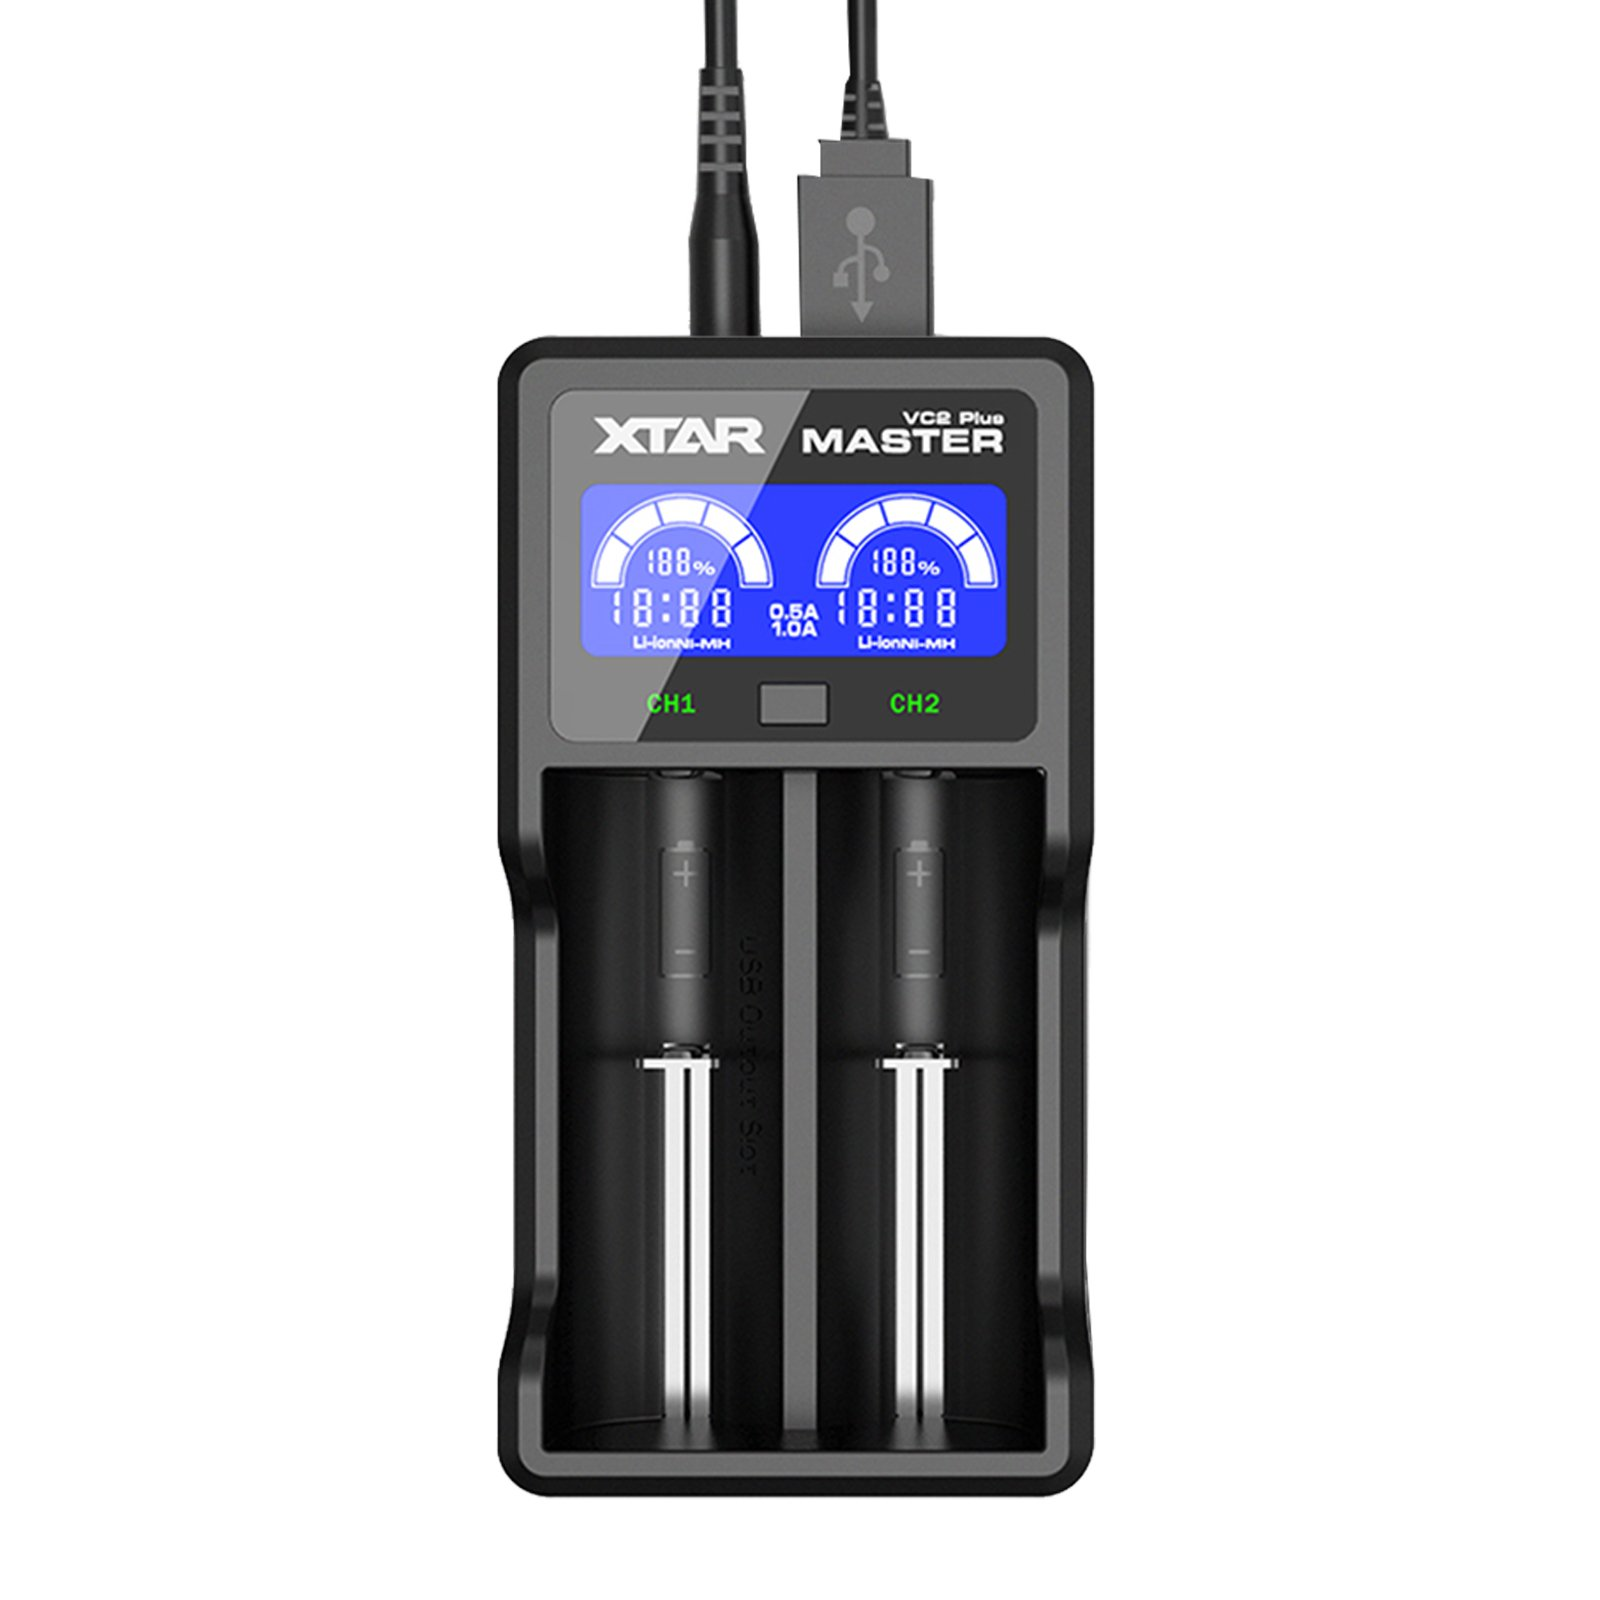 XTAR VC2 Plus Master 2 Slots 1A Current Intelligent USB Battery Charger for 10440/14500/16340/18650/18700/22650/25500/26650 3.6/3.7V Li-ion Battery